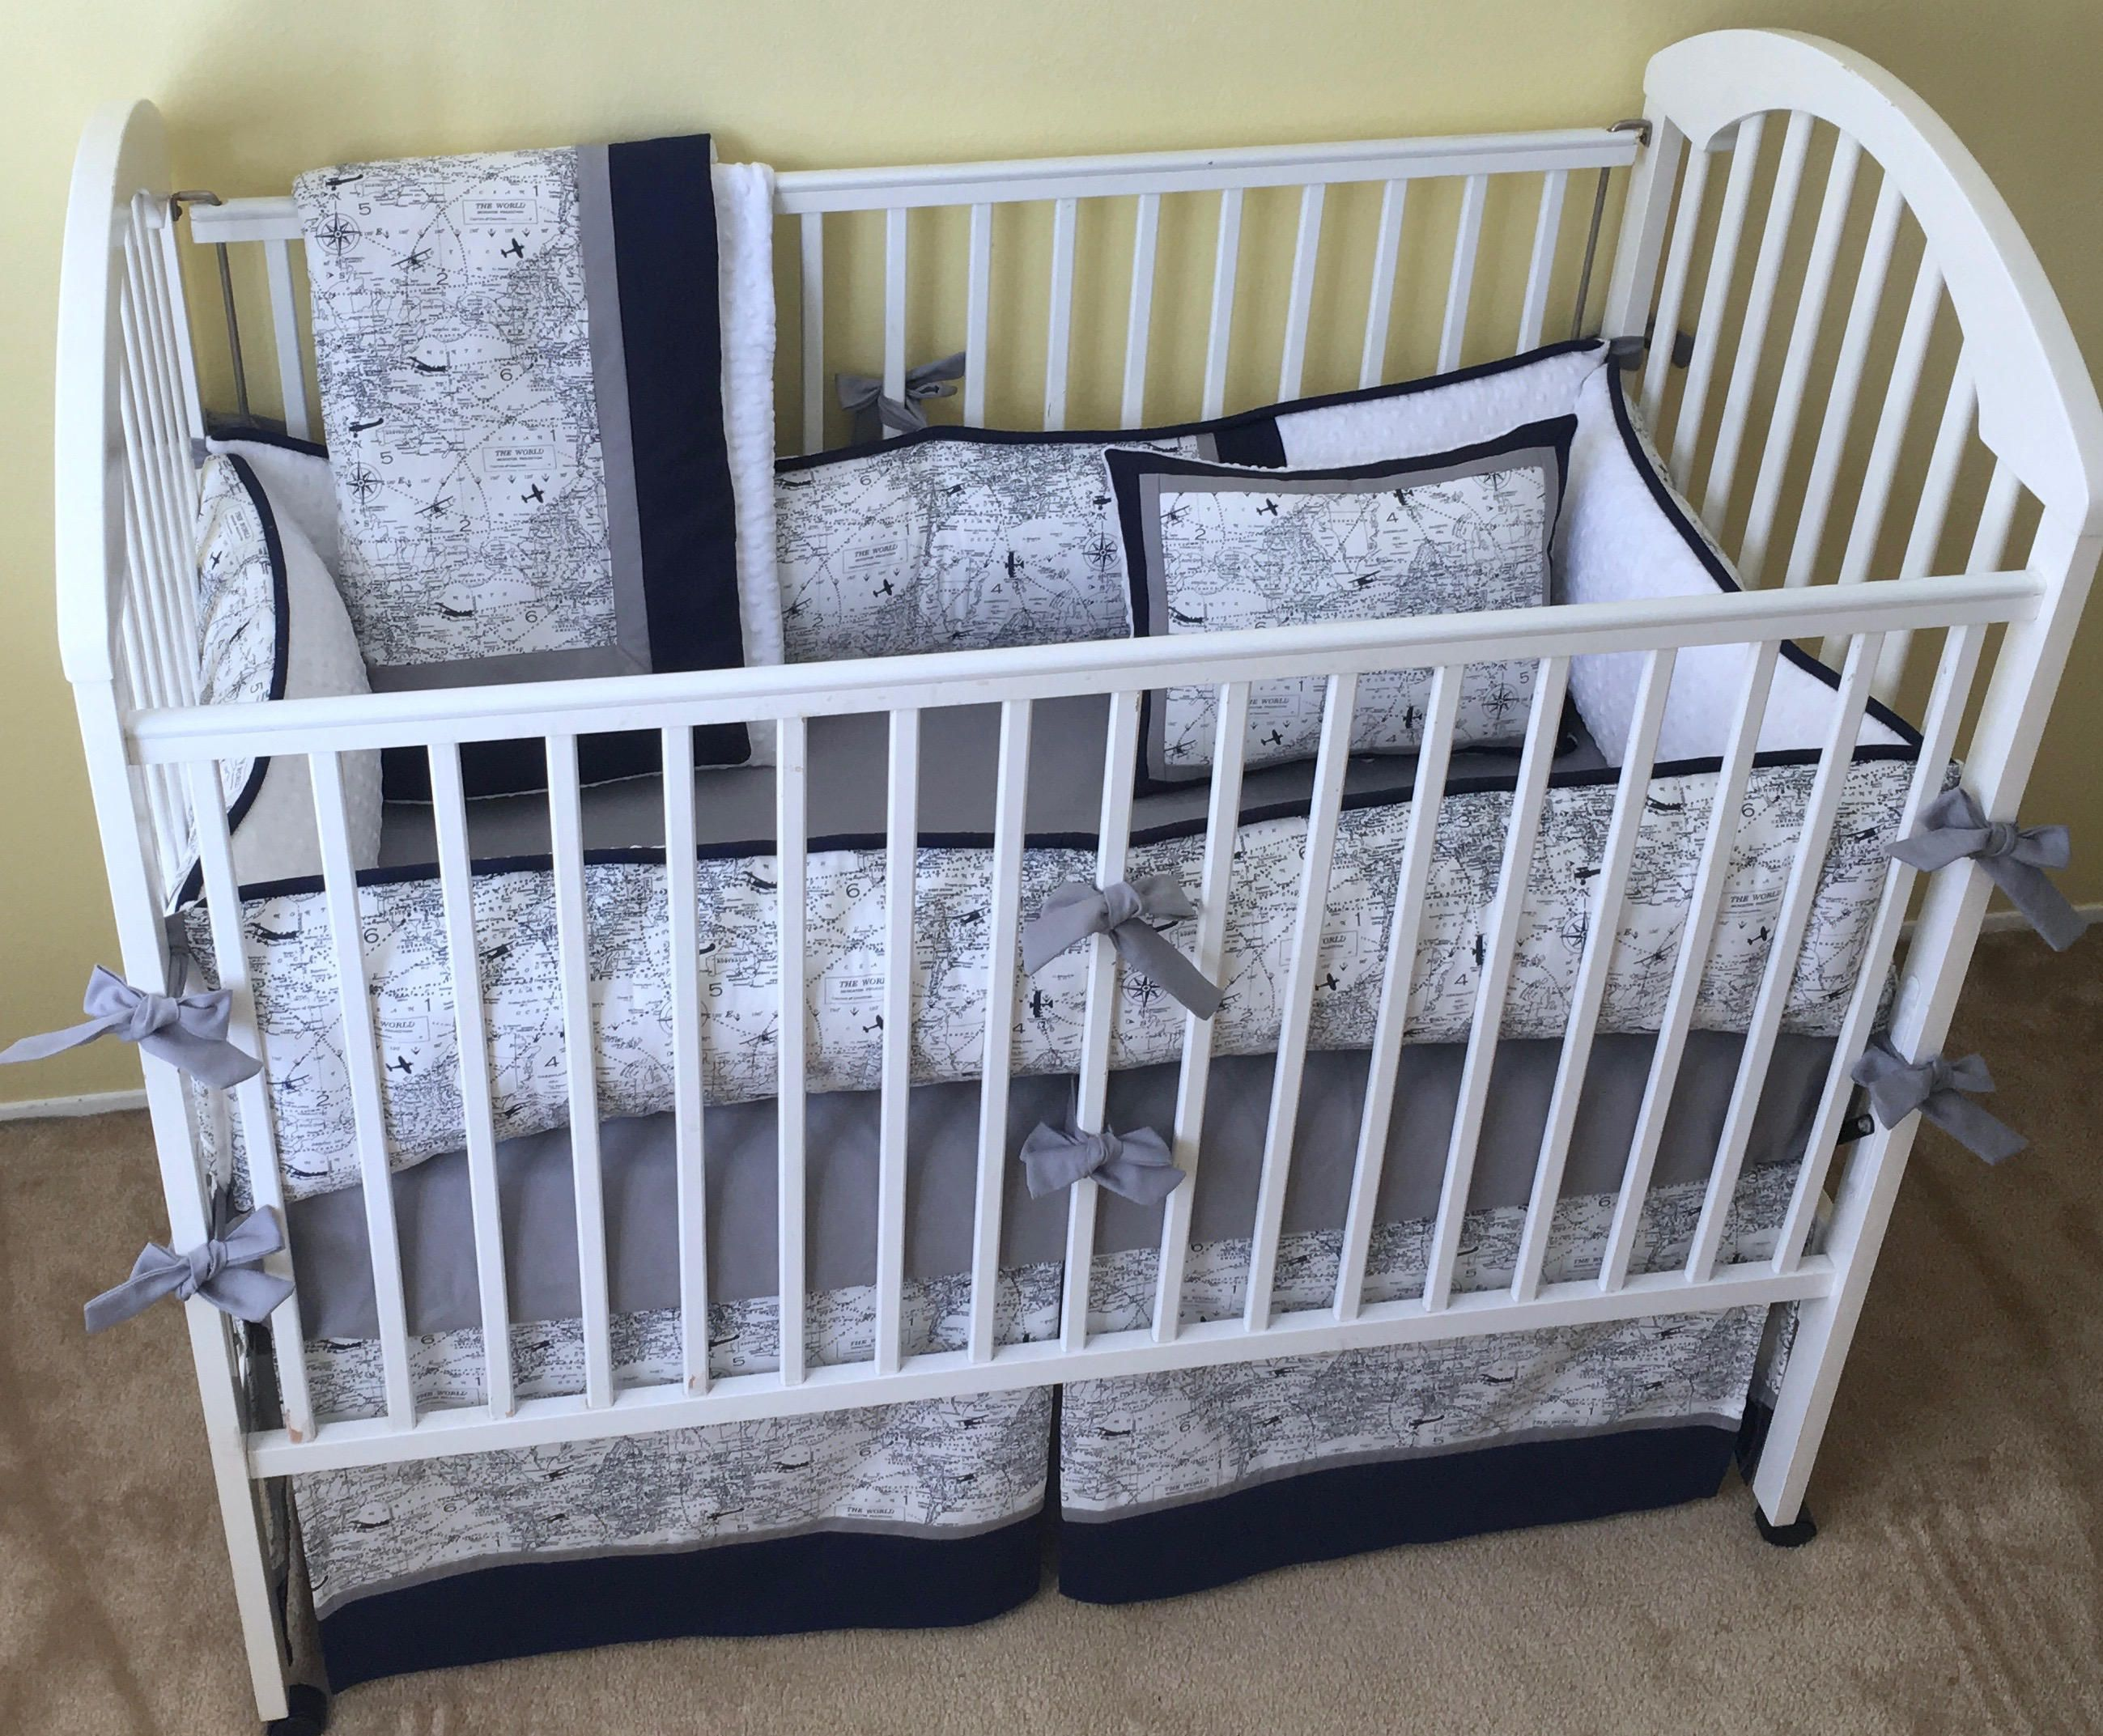 regarding nursery design cribs organic bumpergrayson residence bumper excellent for grayson your bedroom pads crib